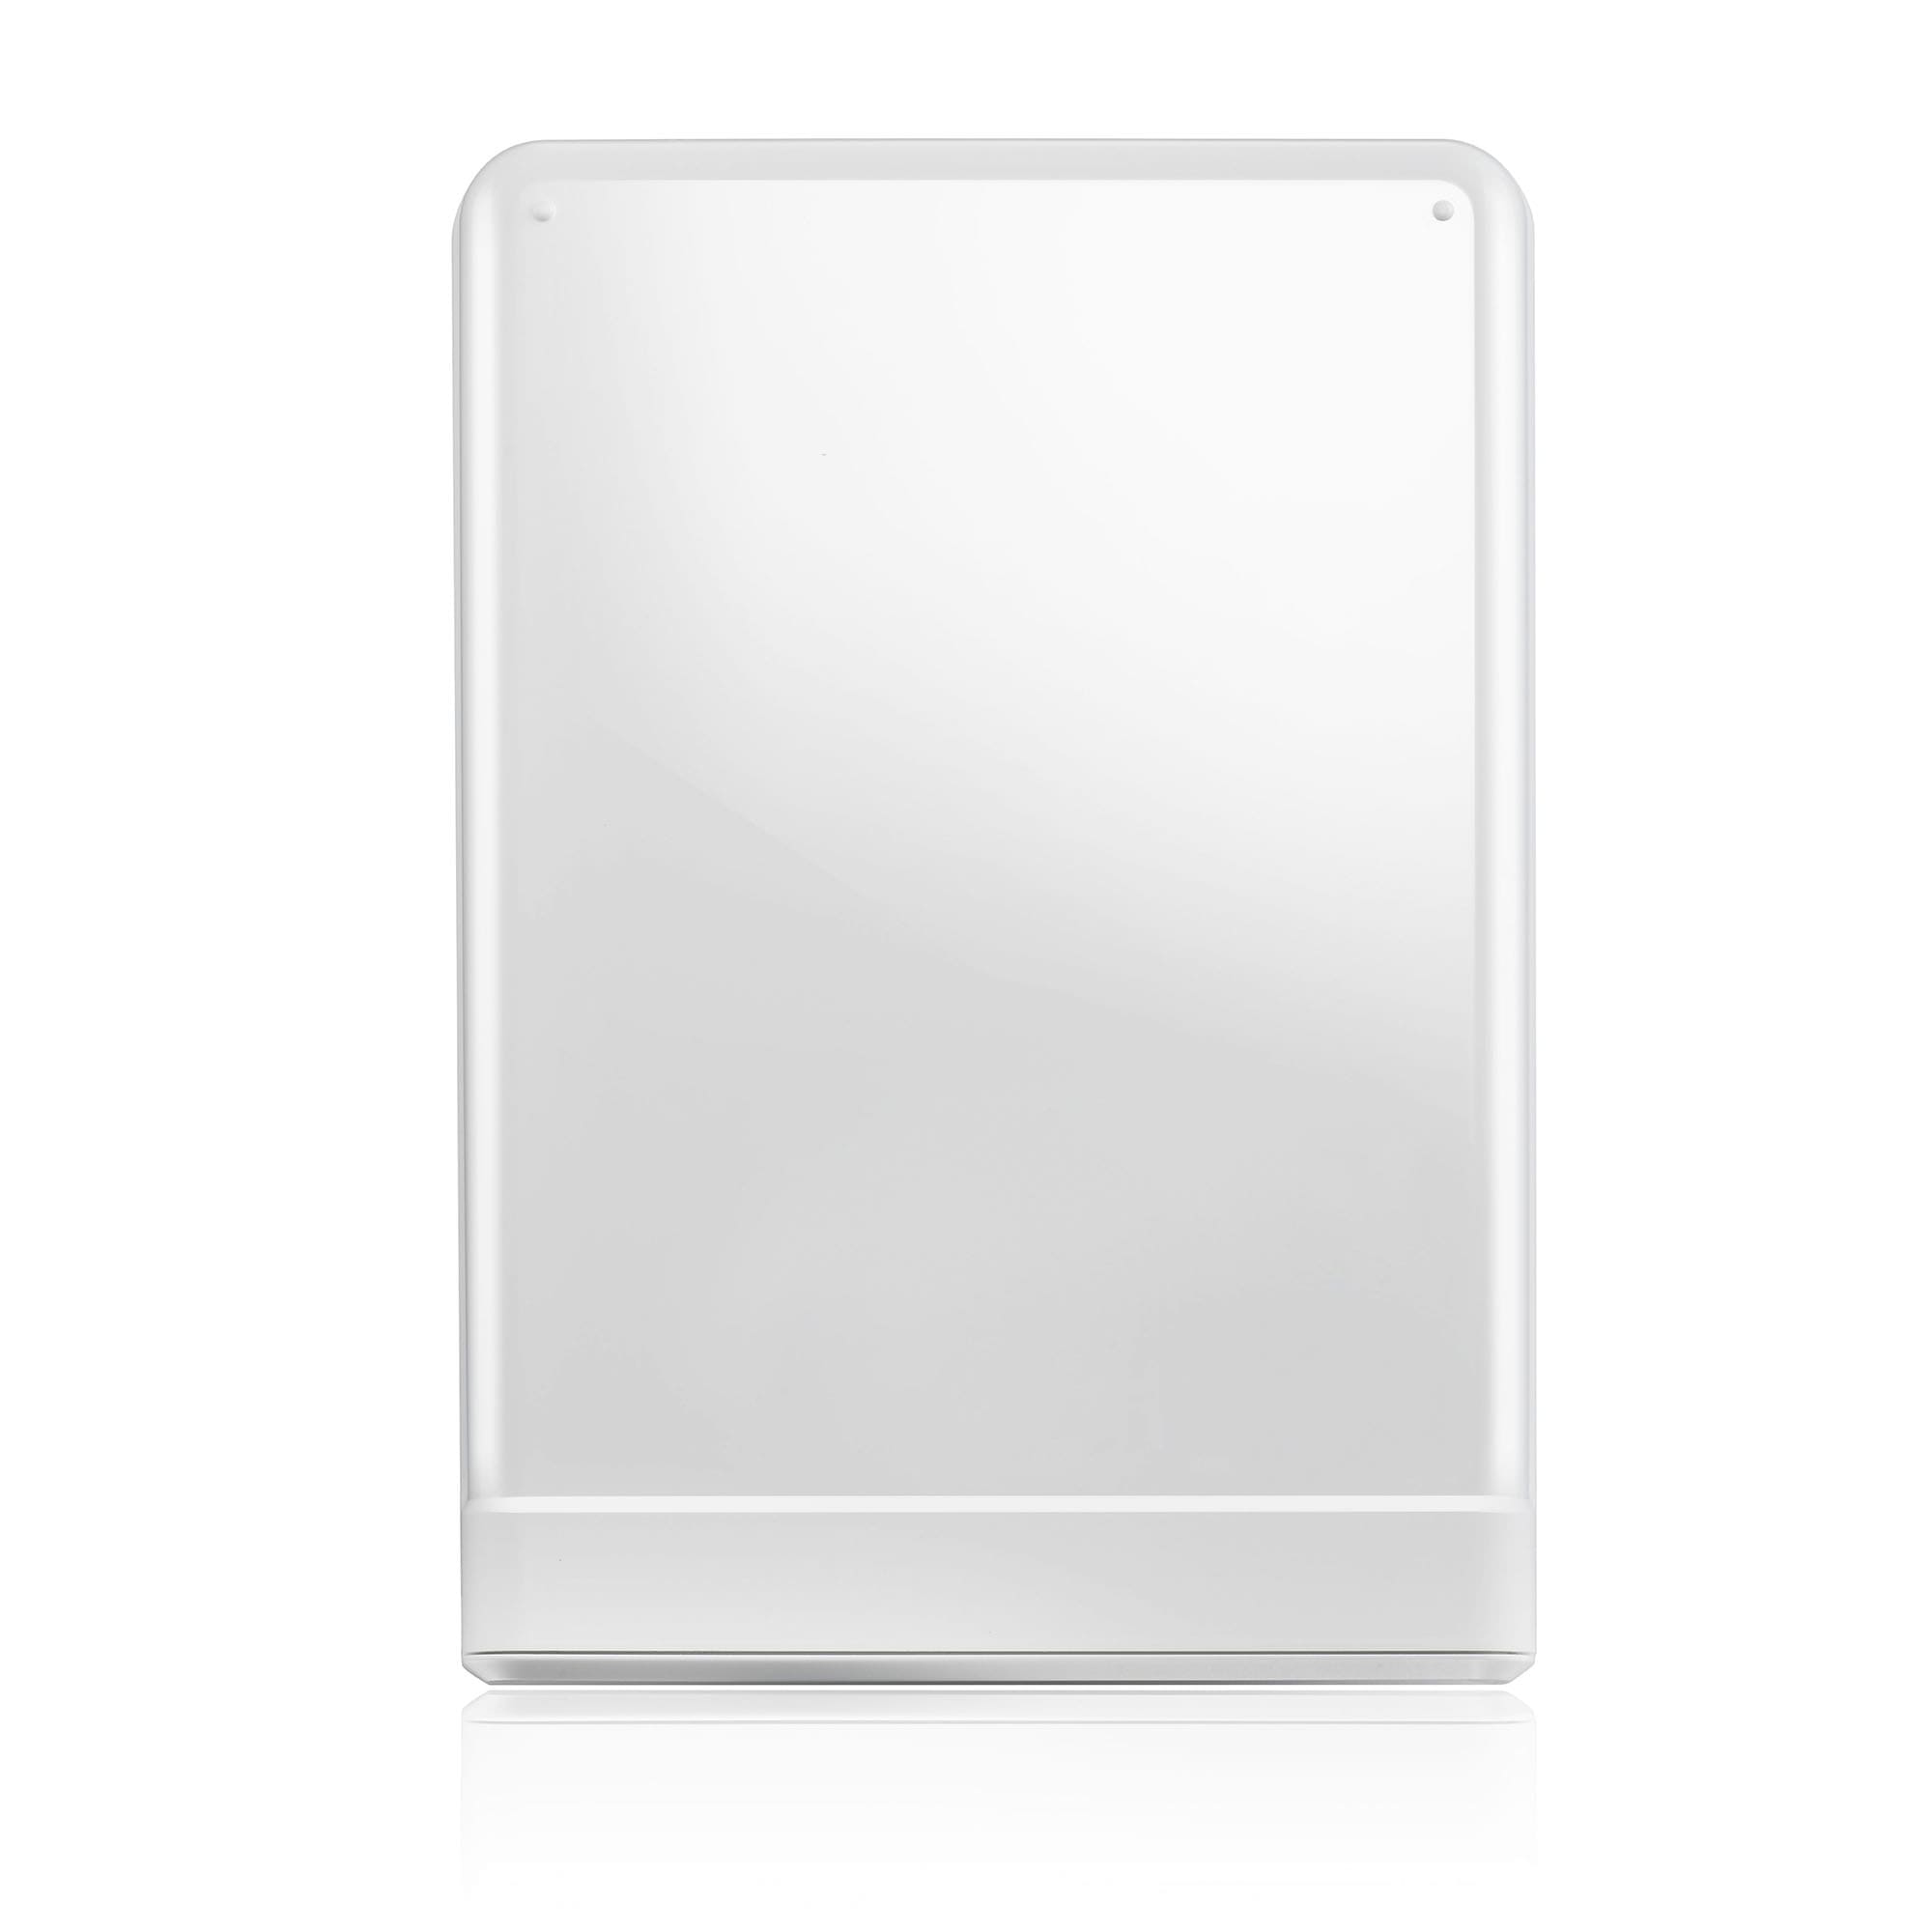 ADATA HV620S 2000GB WHITE EXTERNAL HARD DRIVE